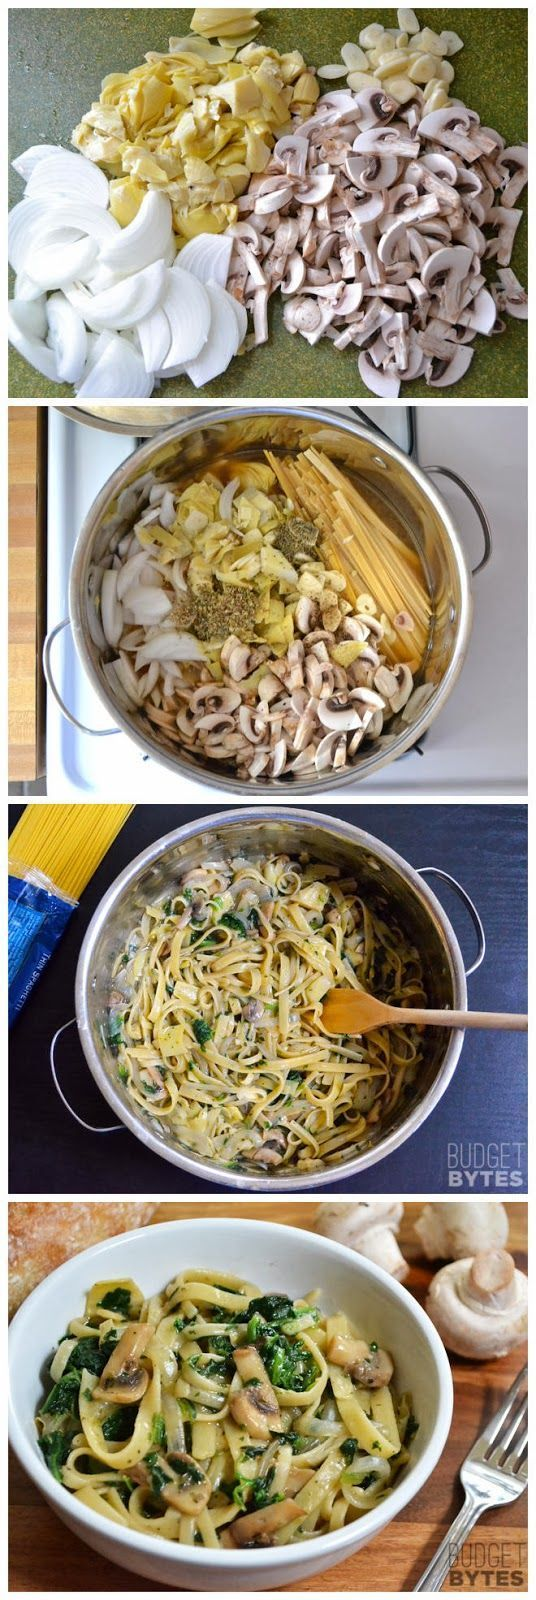 Spinach & artichoke wonderpot - I have changed original website link as this one has actual recipe.